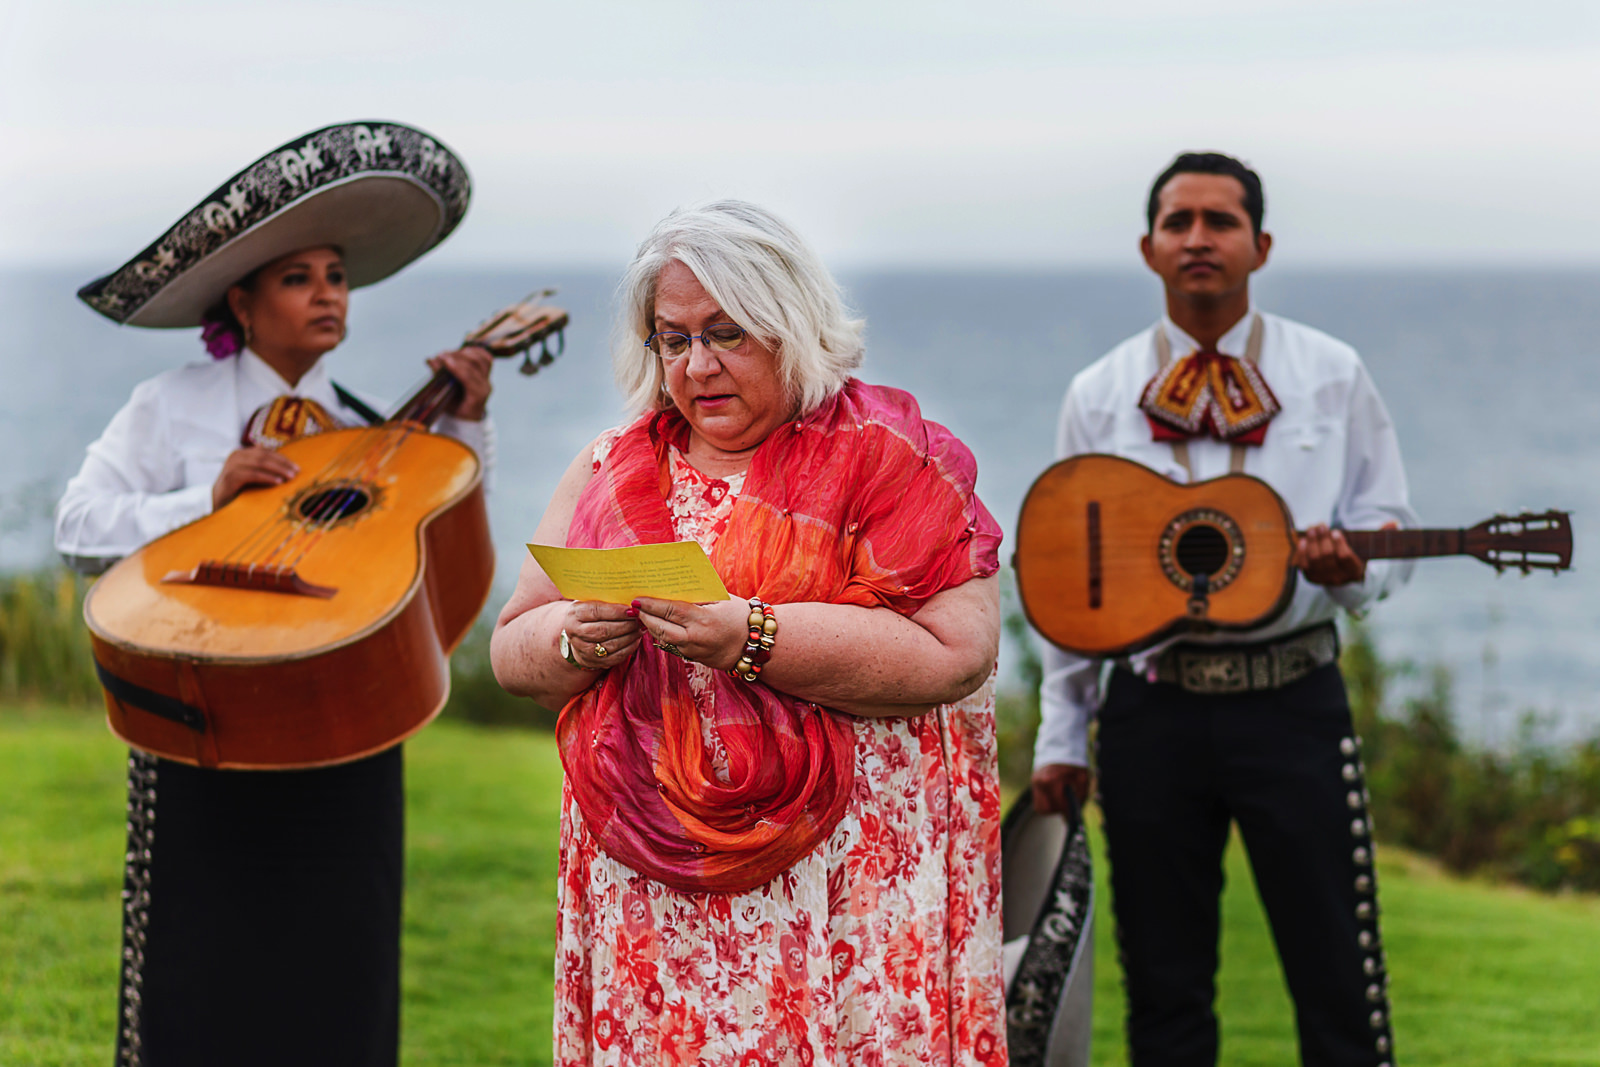 wedding guest reading a few words for ceremony between two mariachi players in background